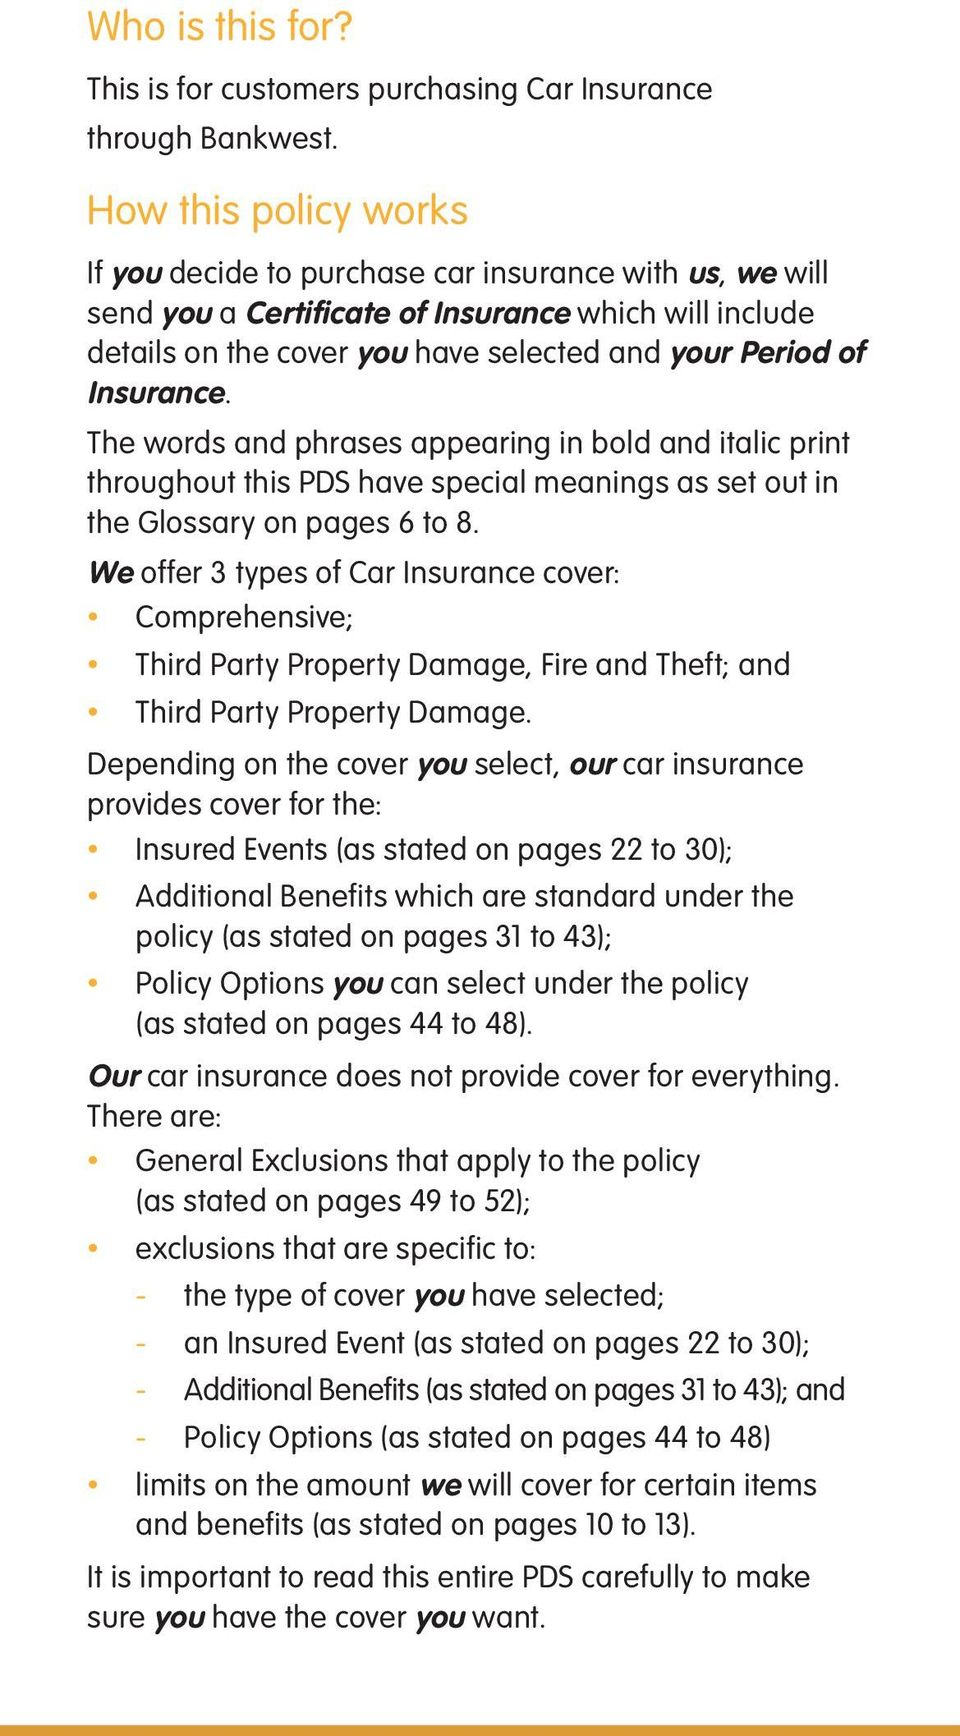 Insurance. The words and phrases appearing in bold and italic print throughout this PDS have special meanings as set out in the Glossary on pages 6 to 8.